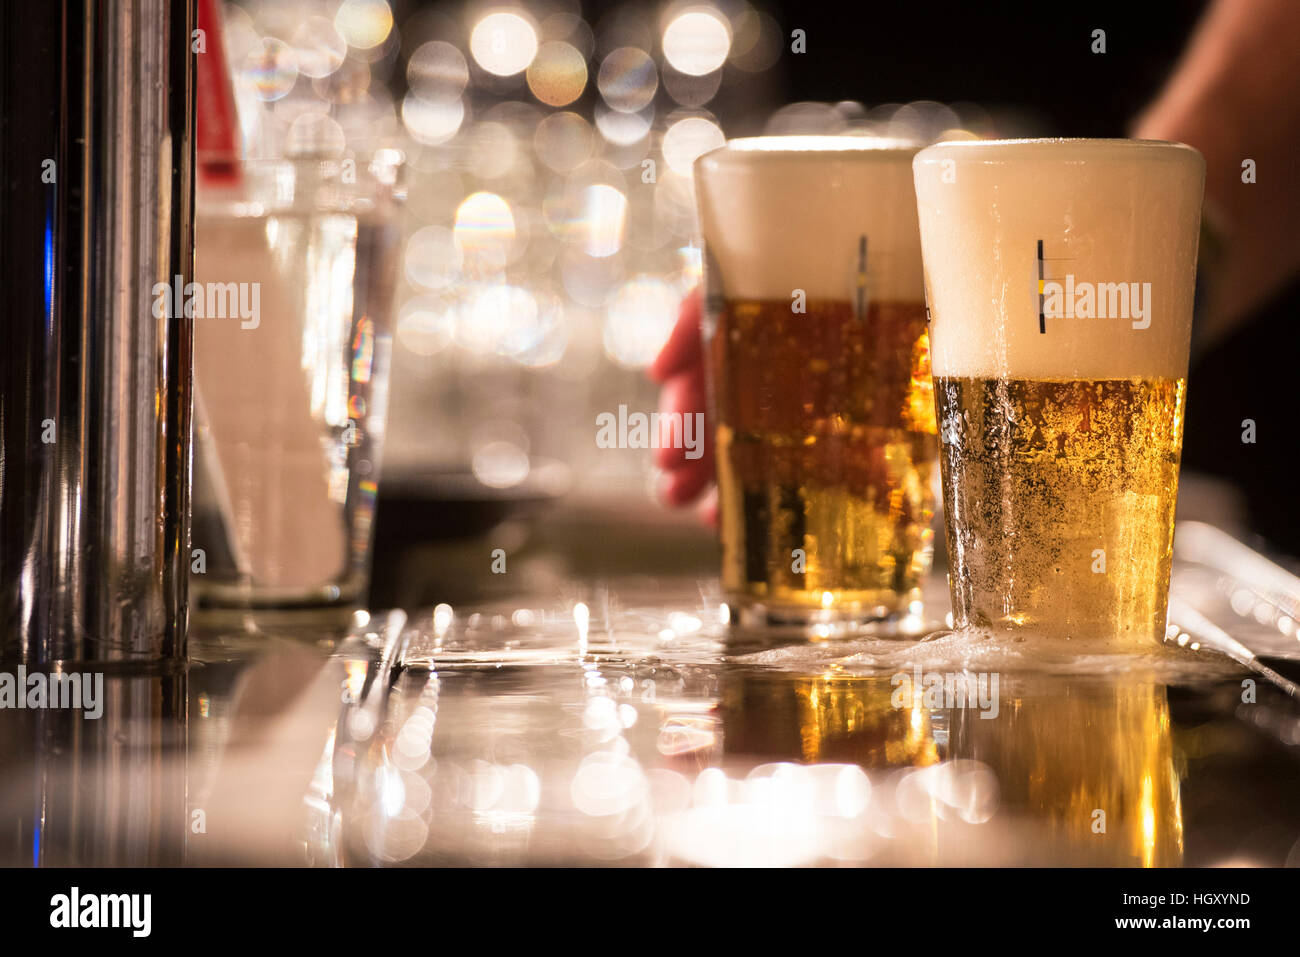 Amsterdam. 11-01-2017. Dutch Championship beer tapping. - Stock Image